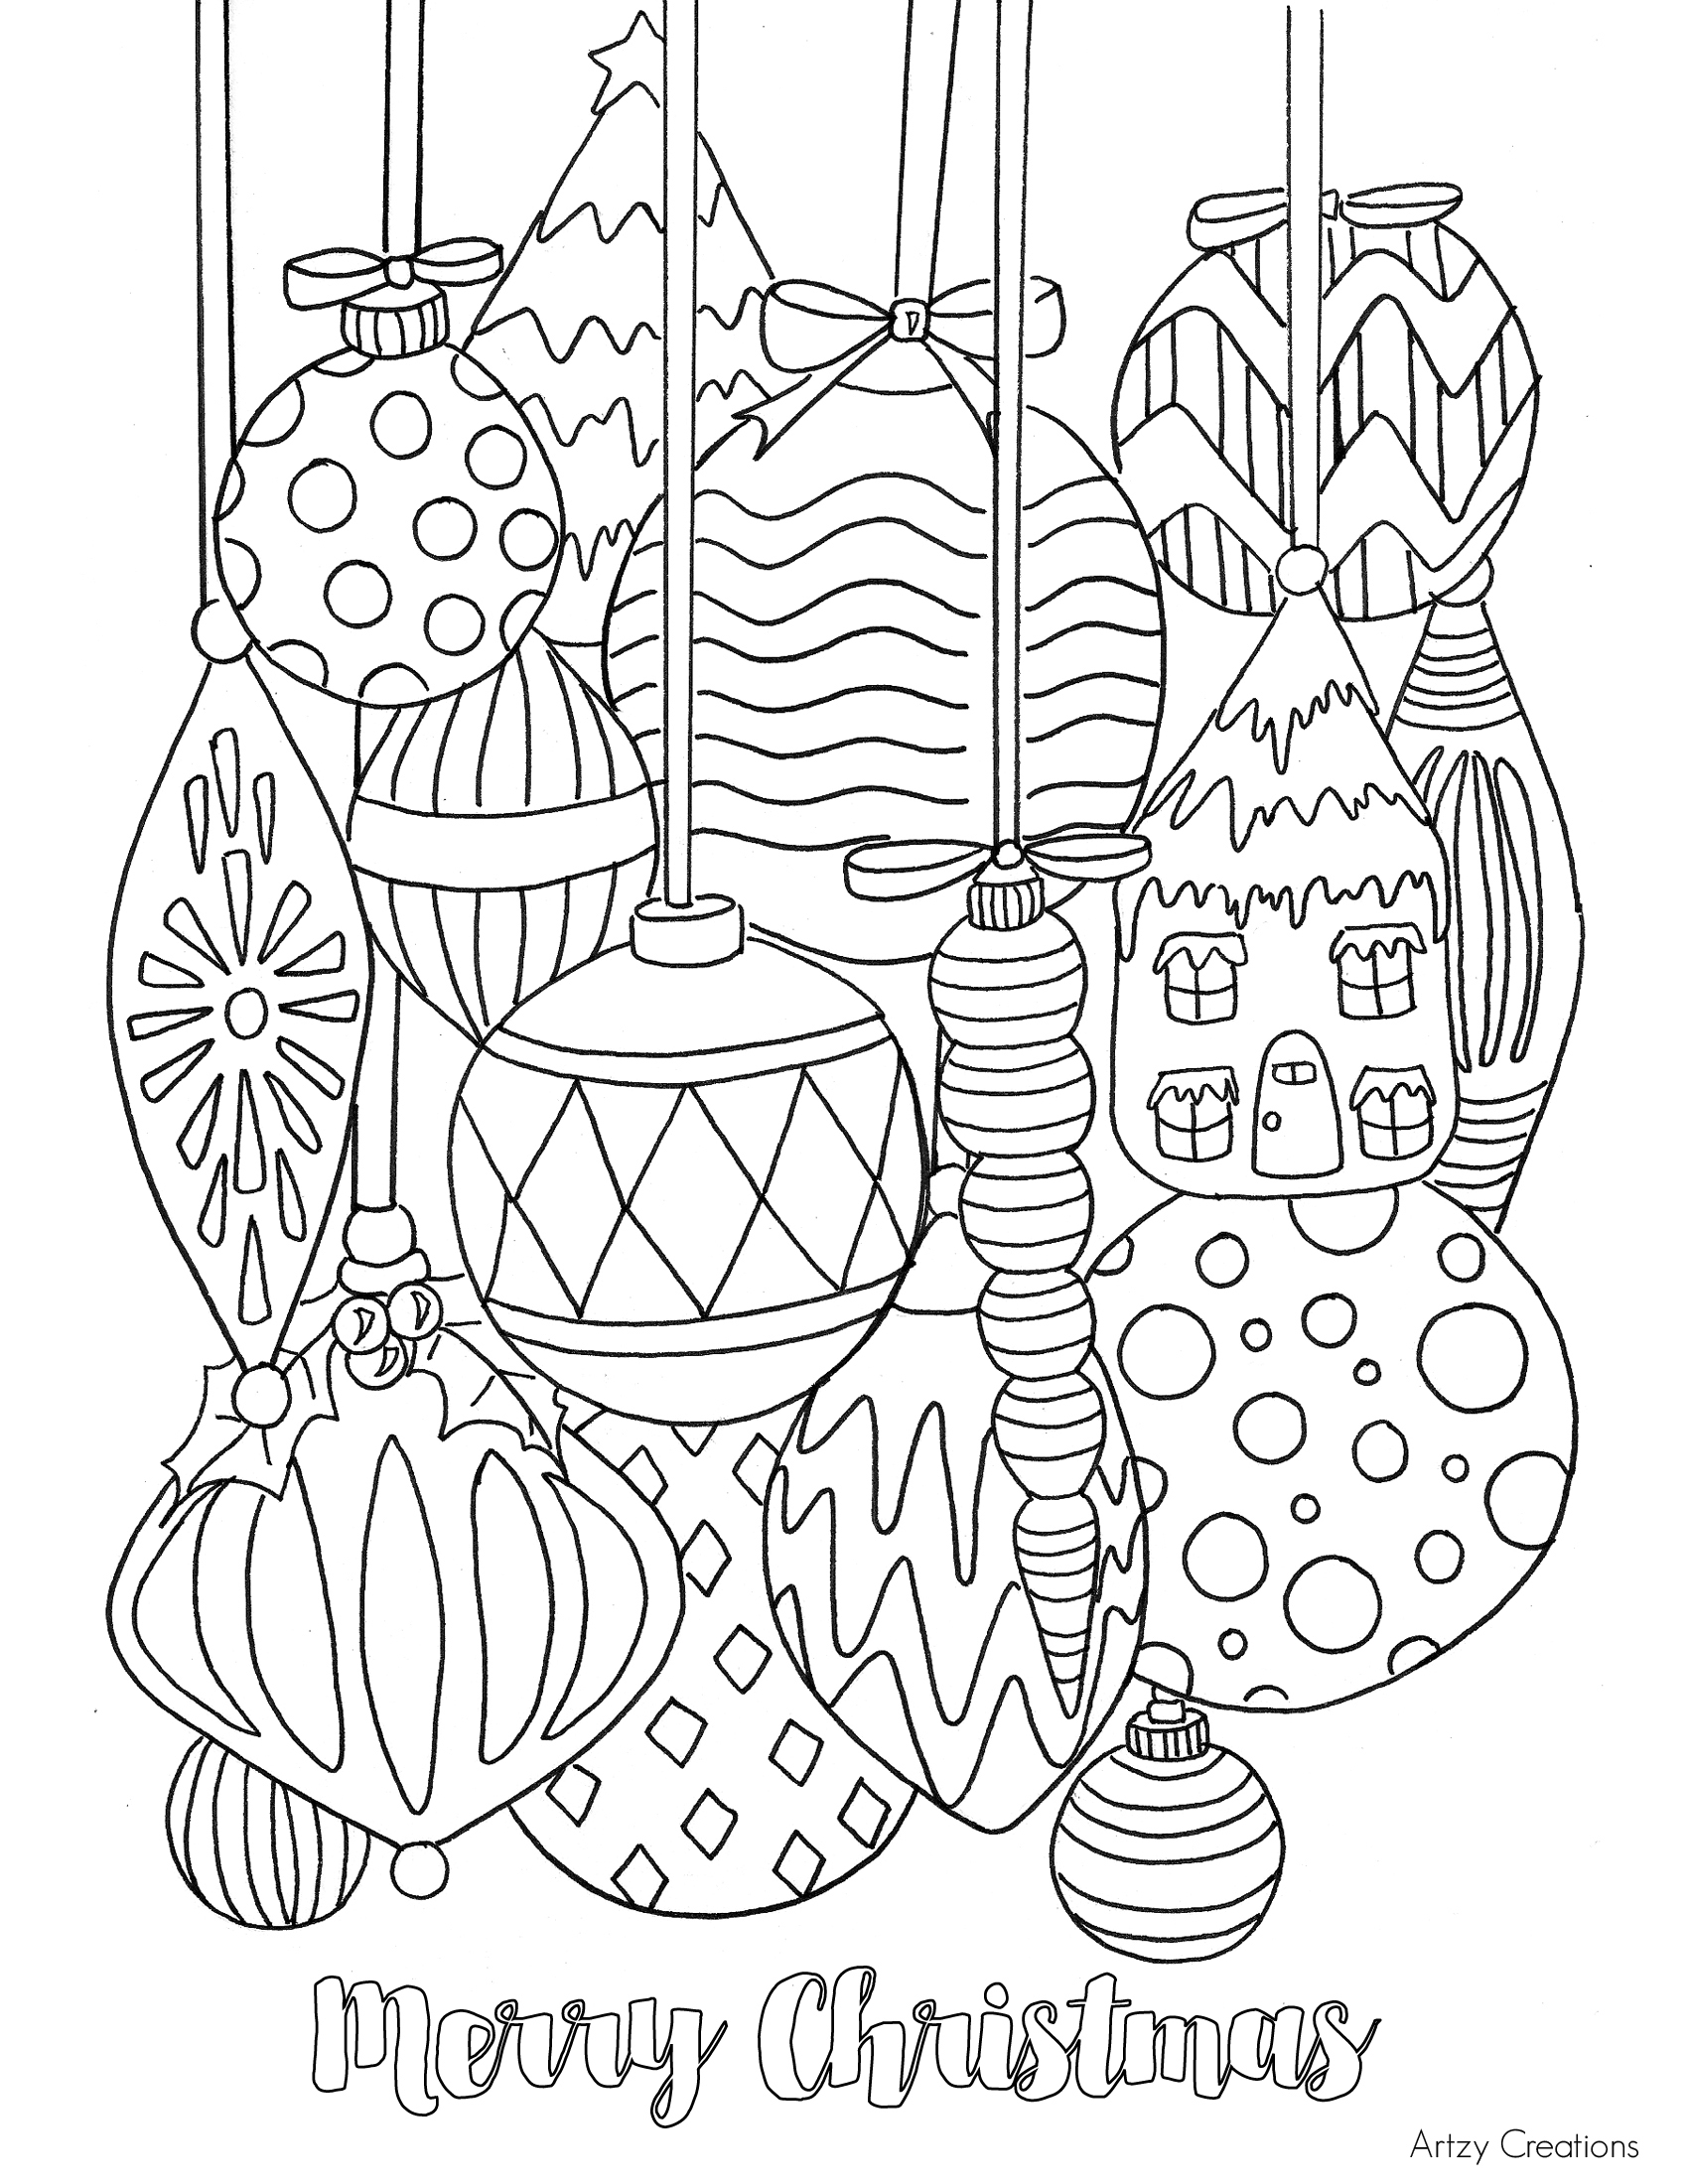 Christmas Coloring Templates With Free Pages For Adults Gallery Books